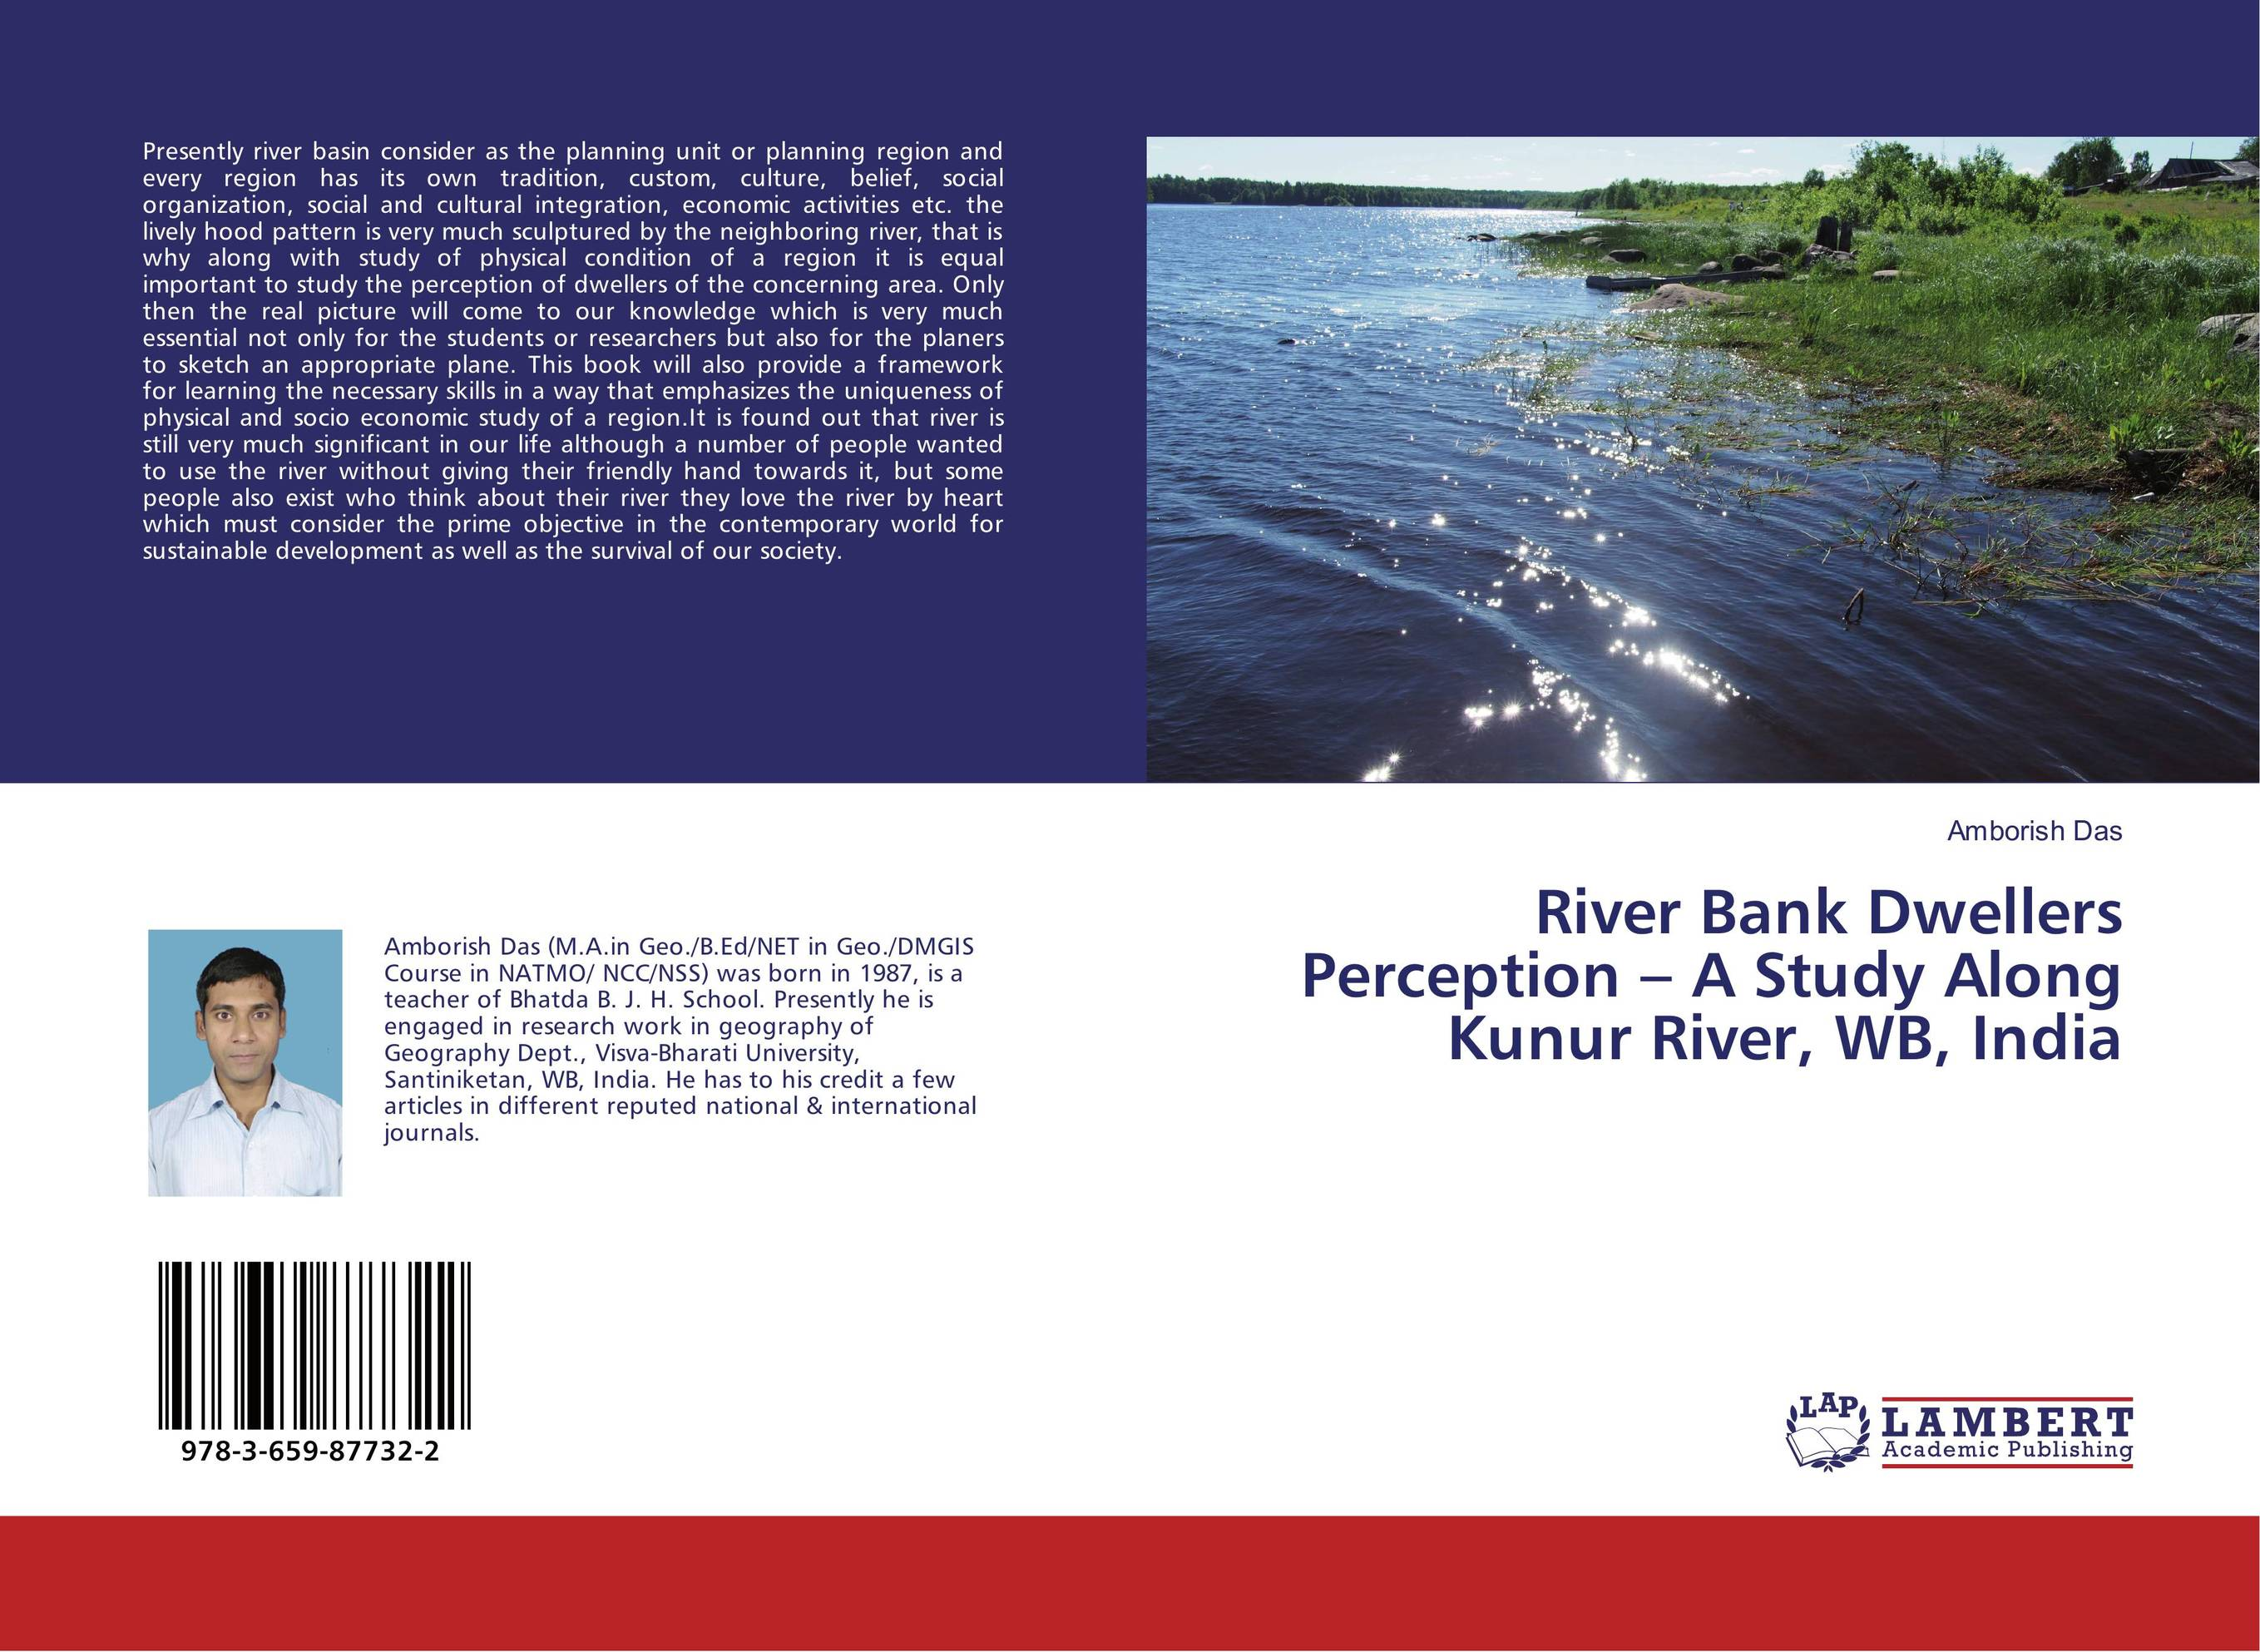 River Bank Dwellers Perception – A Study Along Kunur River, WB, India